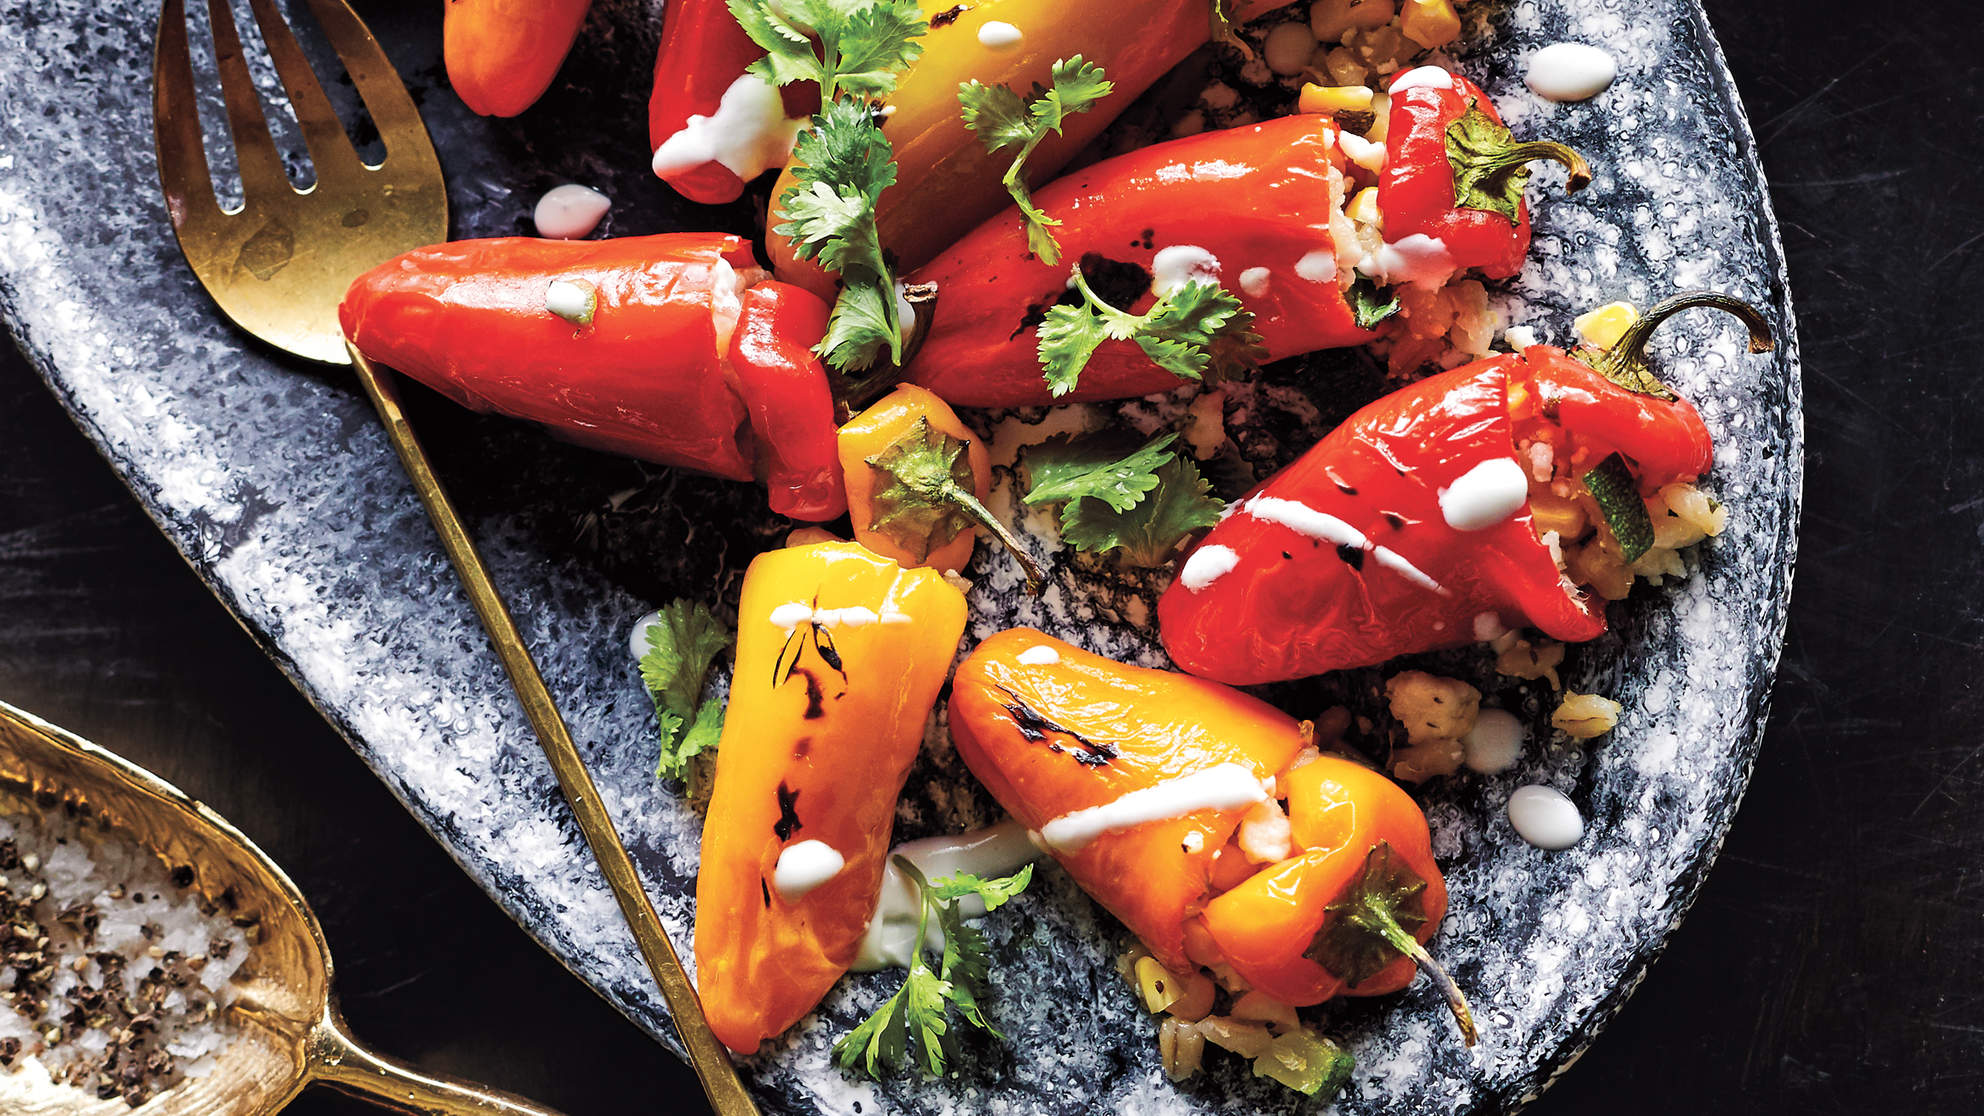 mini-eloie-chiles-rellenos-champagne-recipes